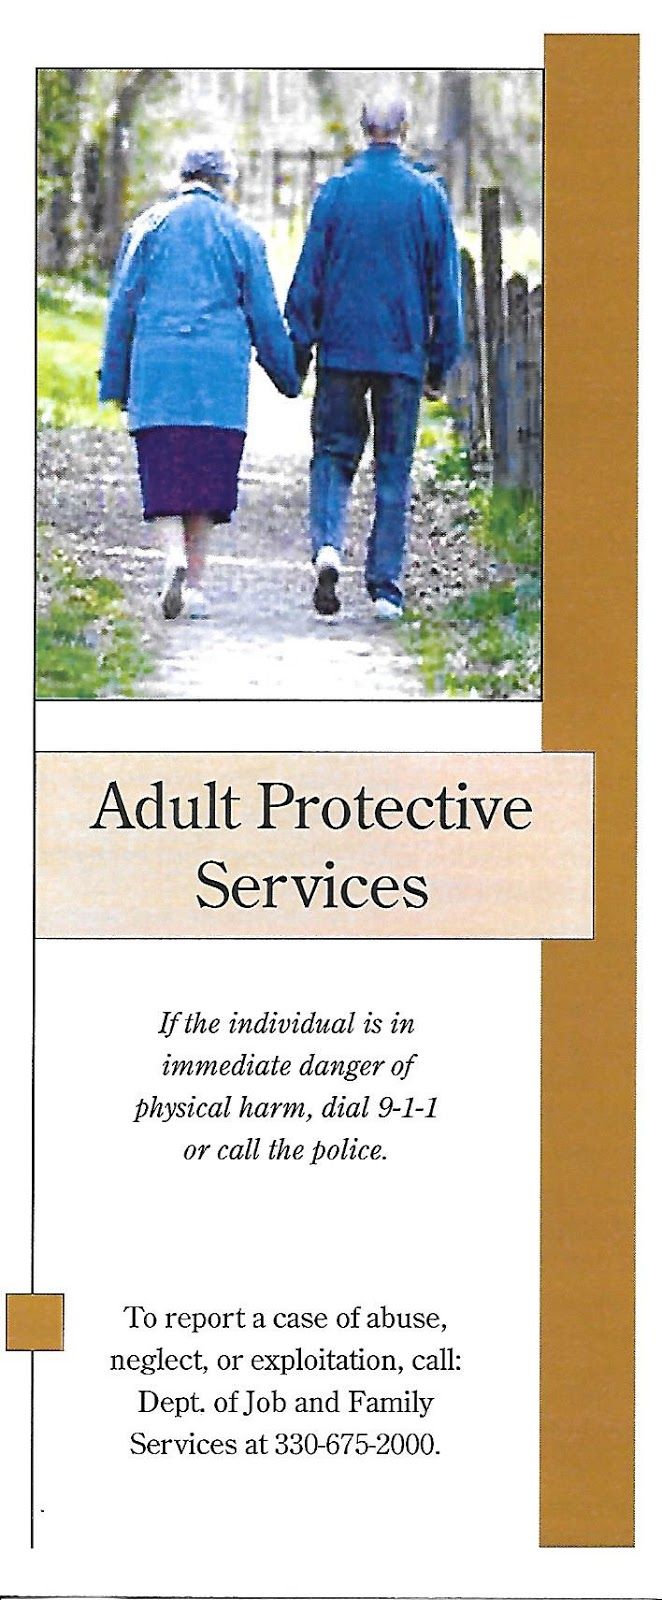 ohio coalition of adult protective services